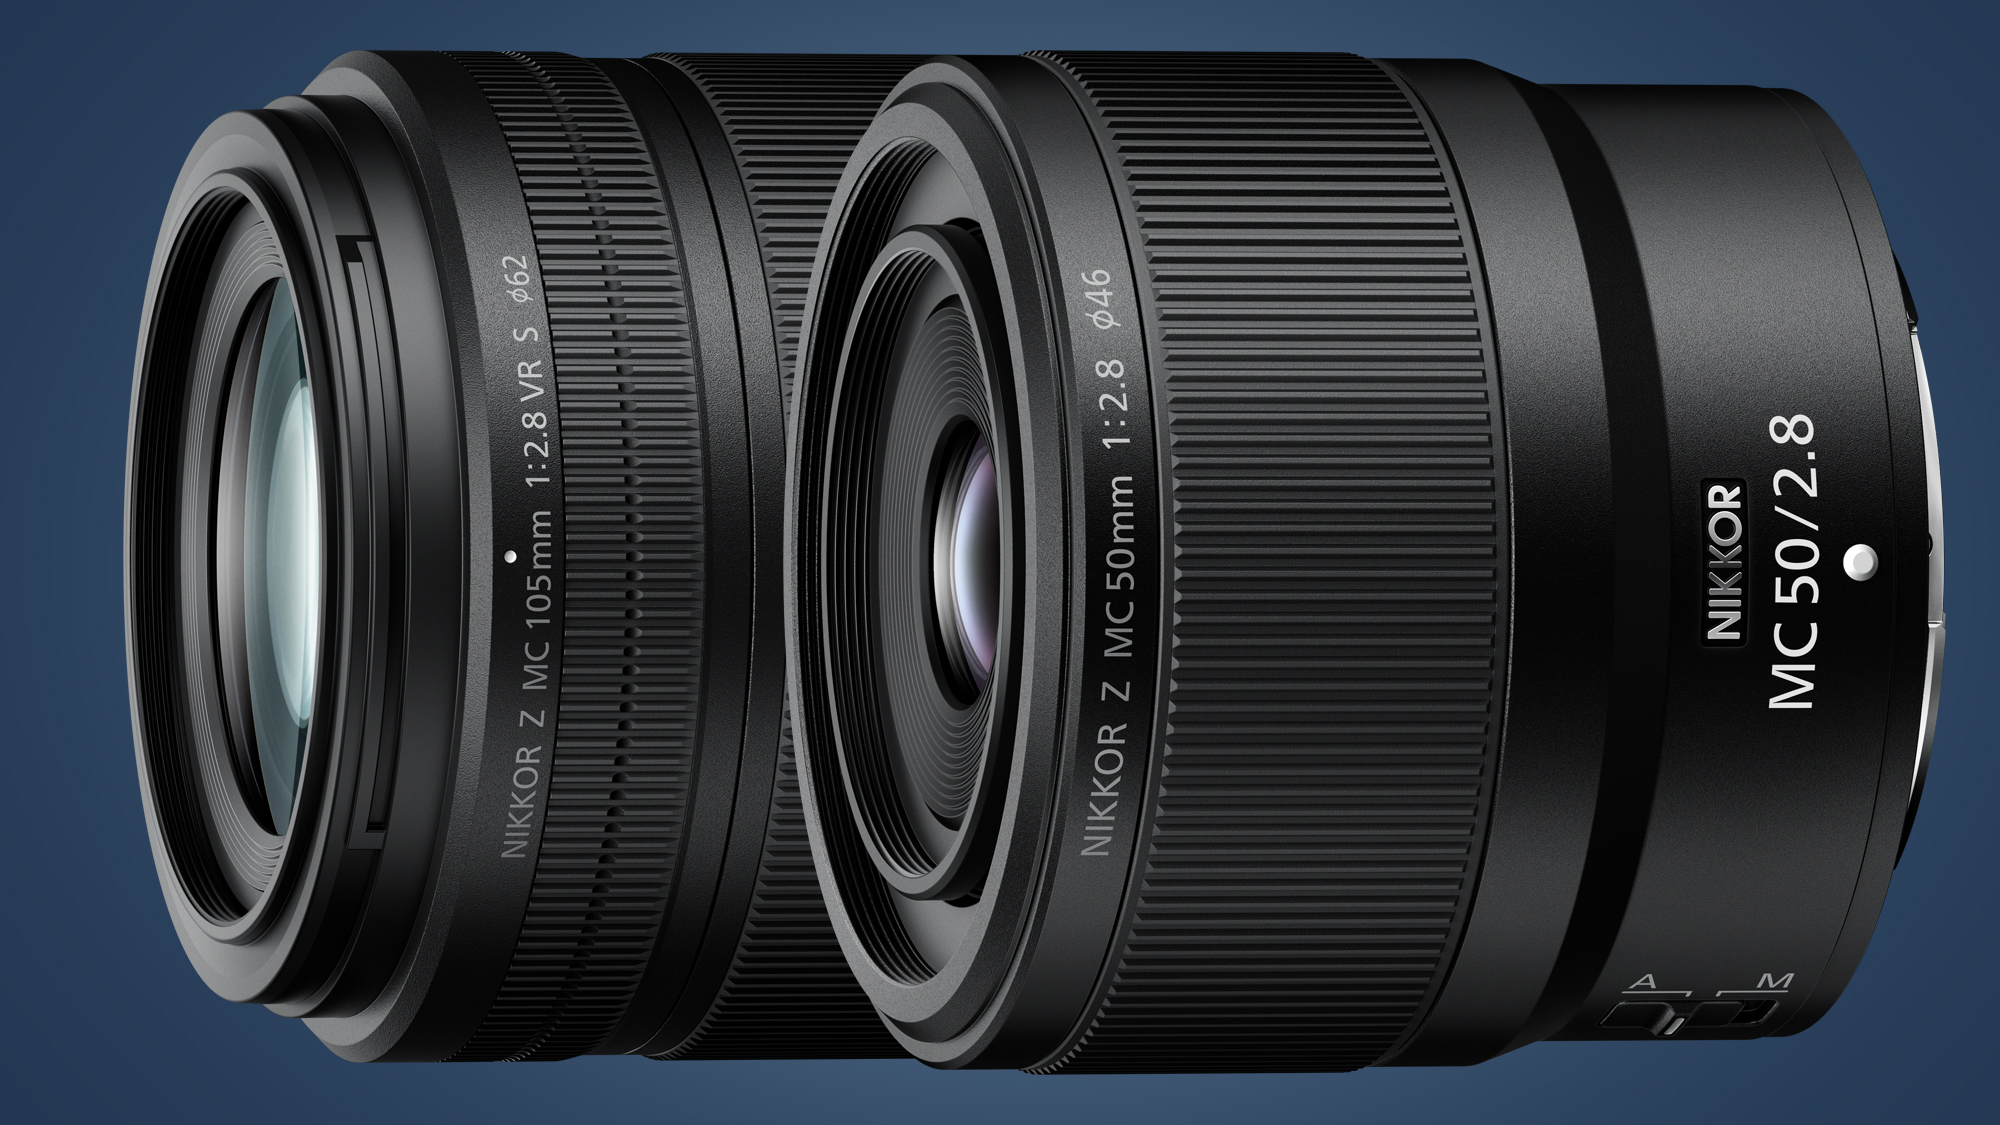 Nikon launches first macro lenses for Z series cameras